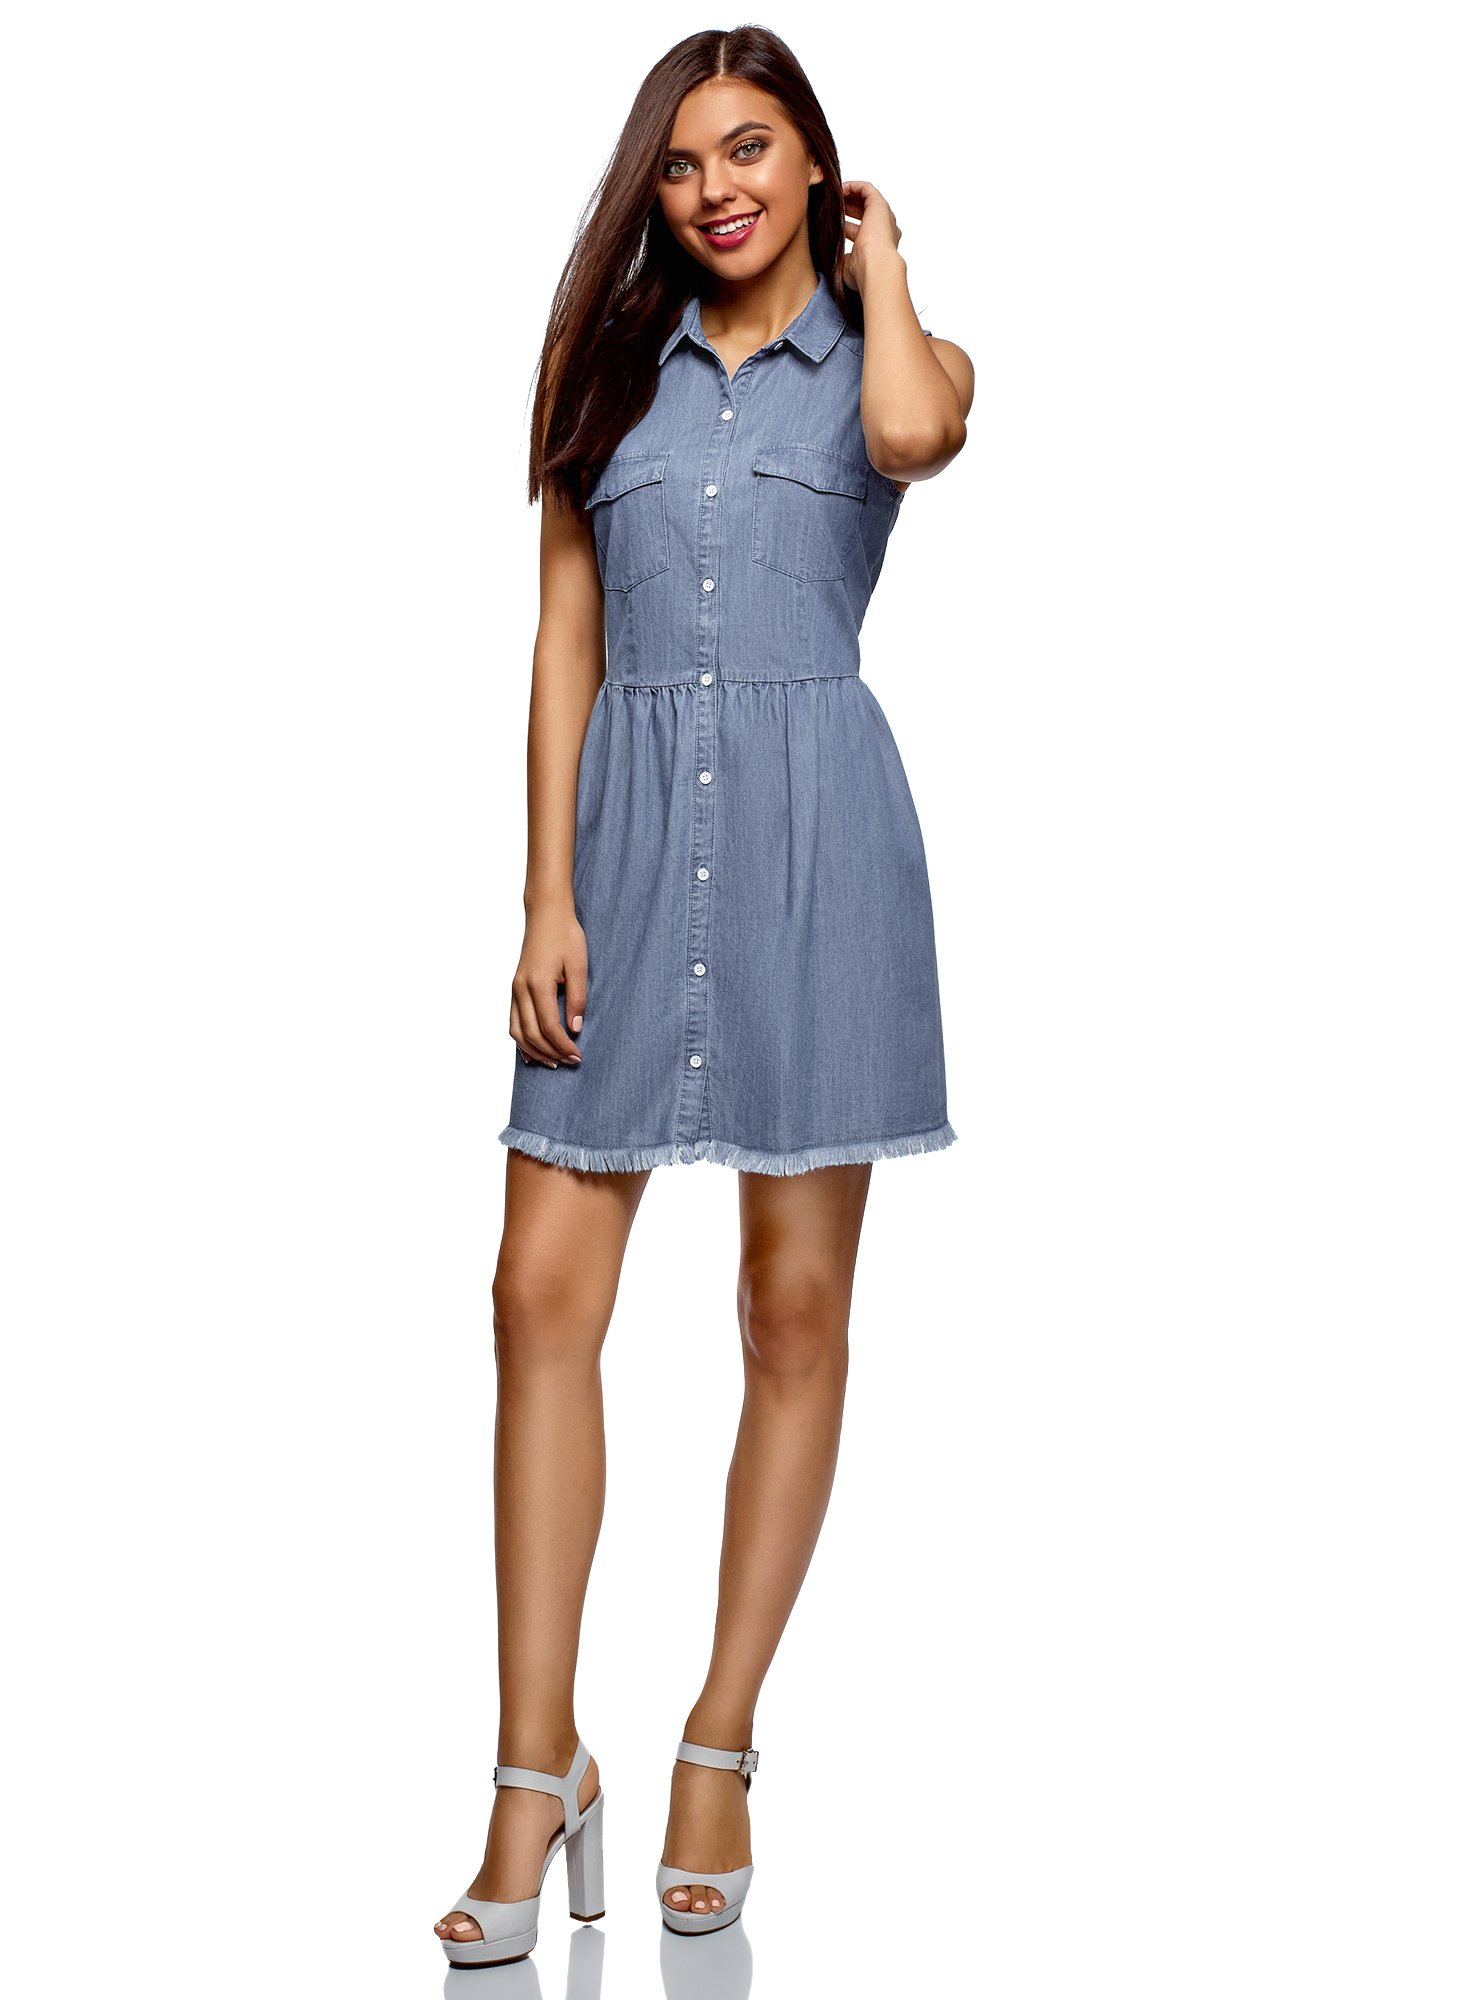 oodji Ultra Women's Button-Up Denim Dress, Blue, 8